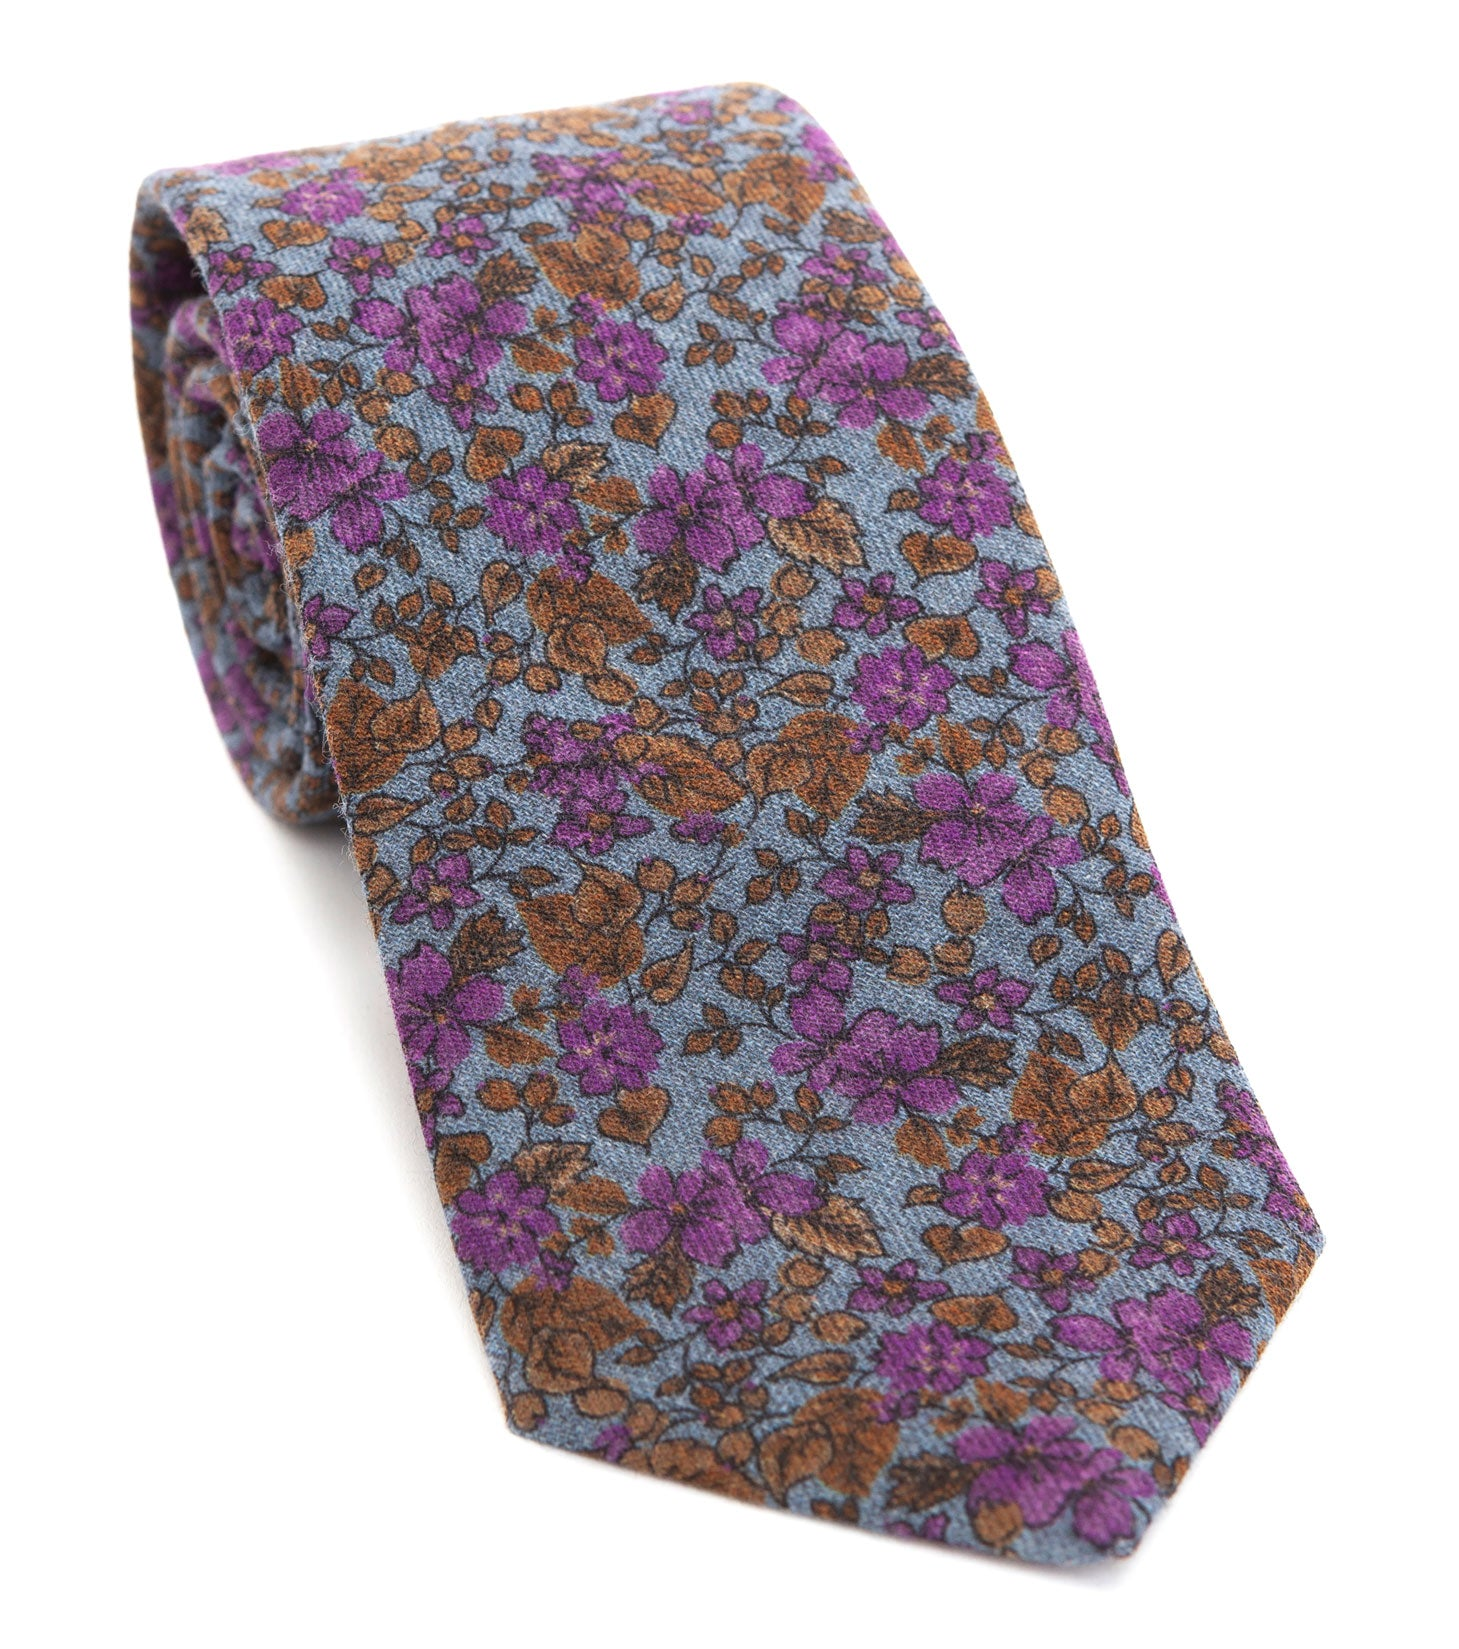 Luxury woven wool tie designed and made exclusively for Regent featuring a soft sky blue overgrown with autumnal gold-brown leaves spurting purple flowers.